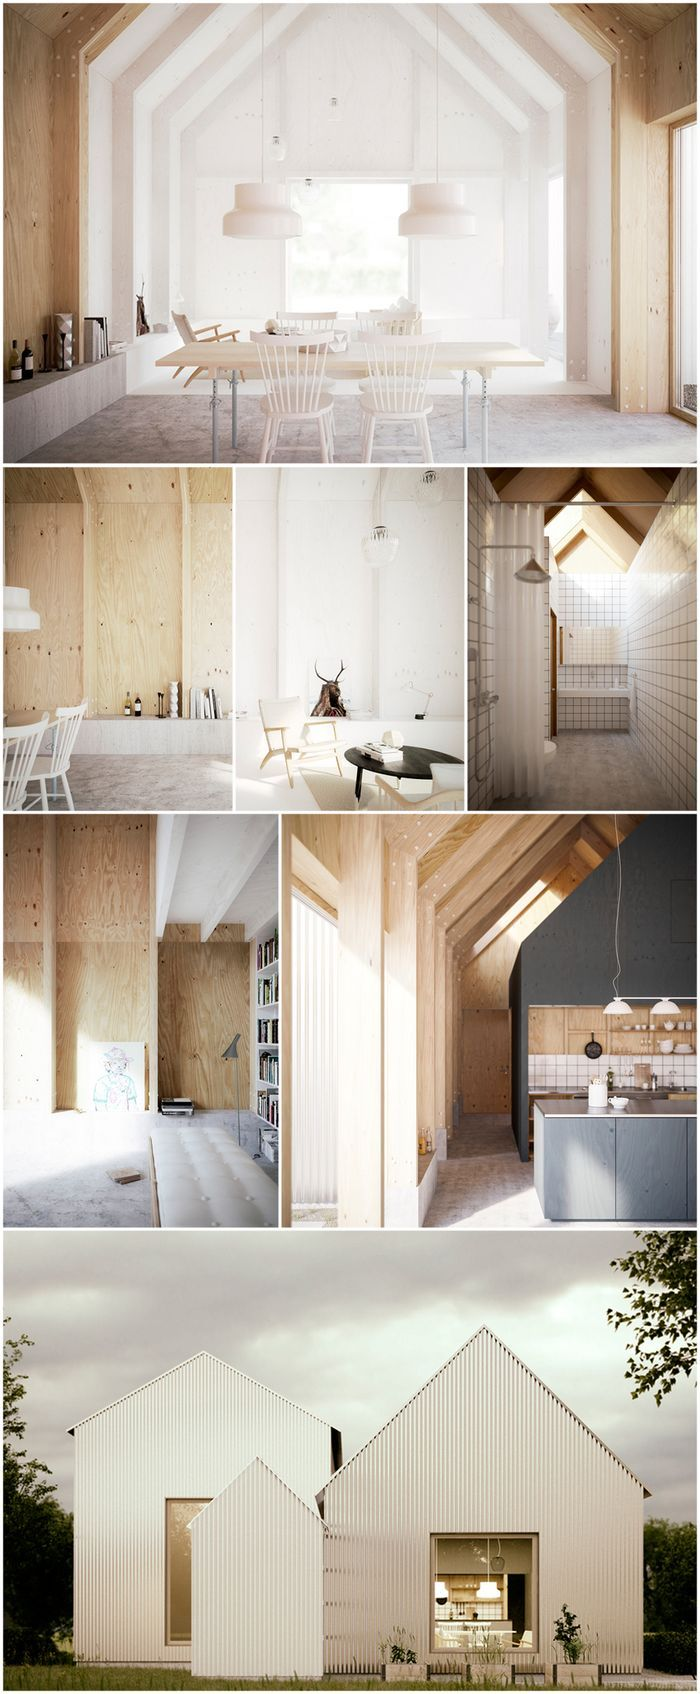 Plywood texture design tiny homes interior architecture decorating hardwood also to live in rh pinterest